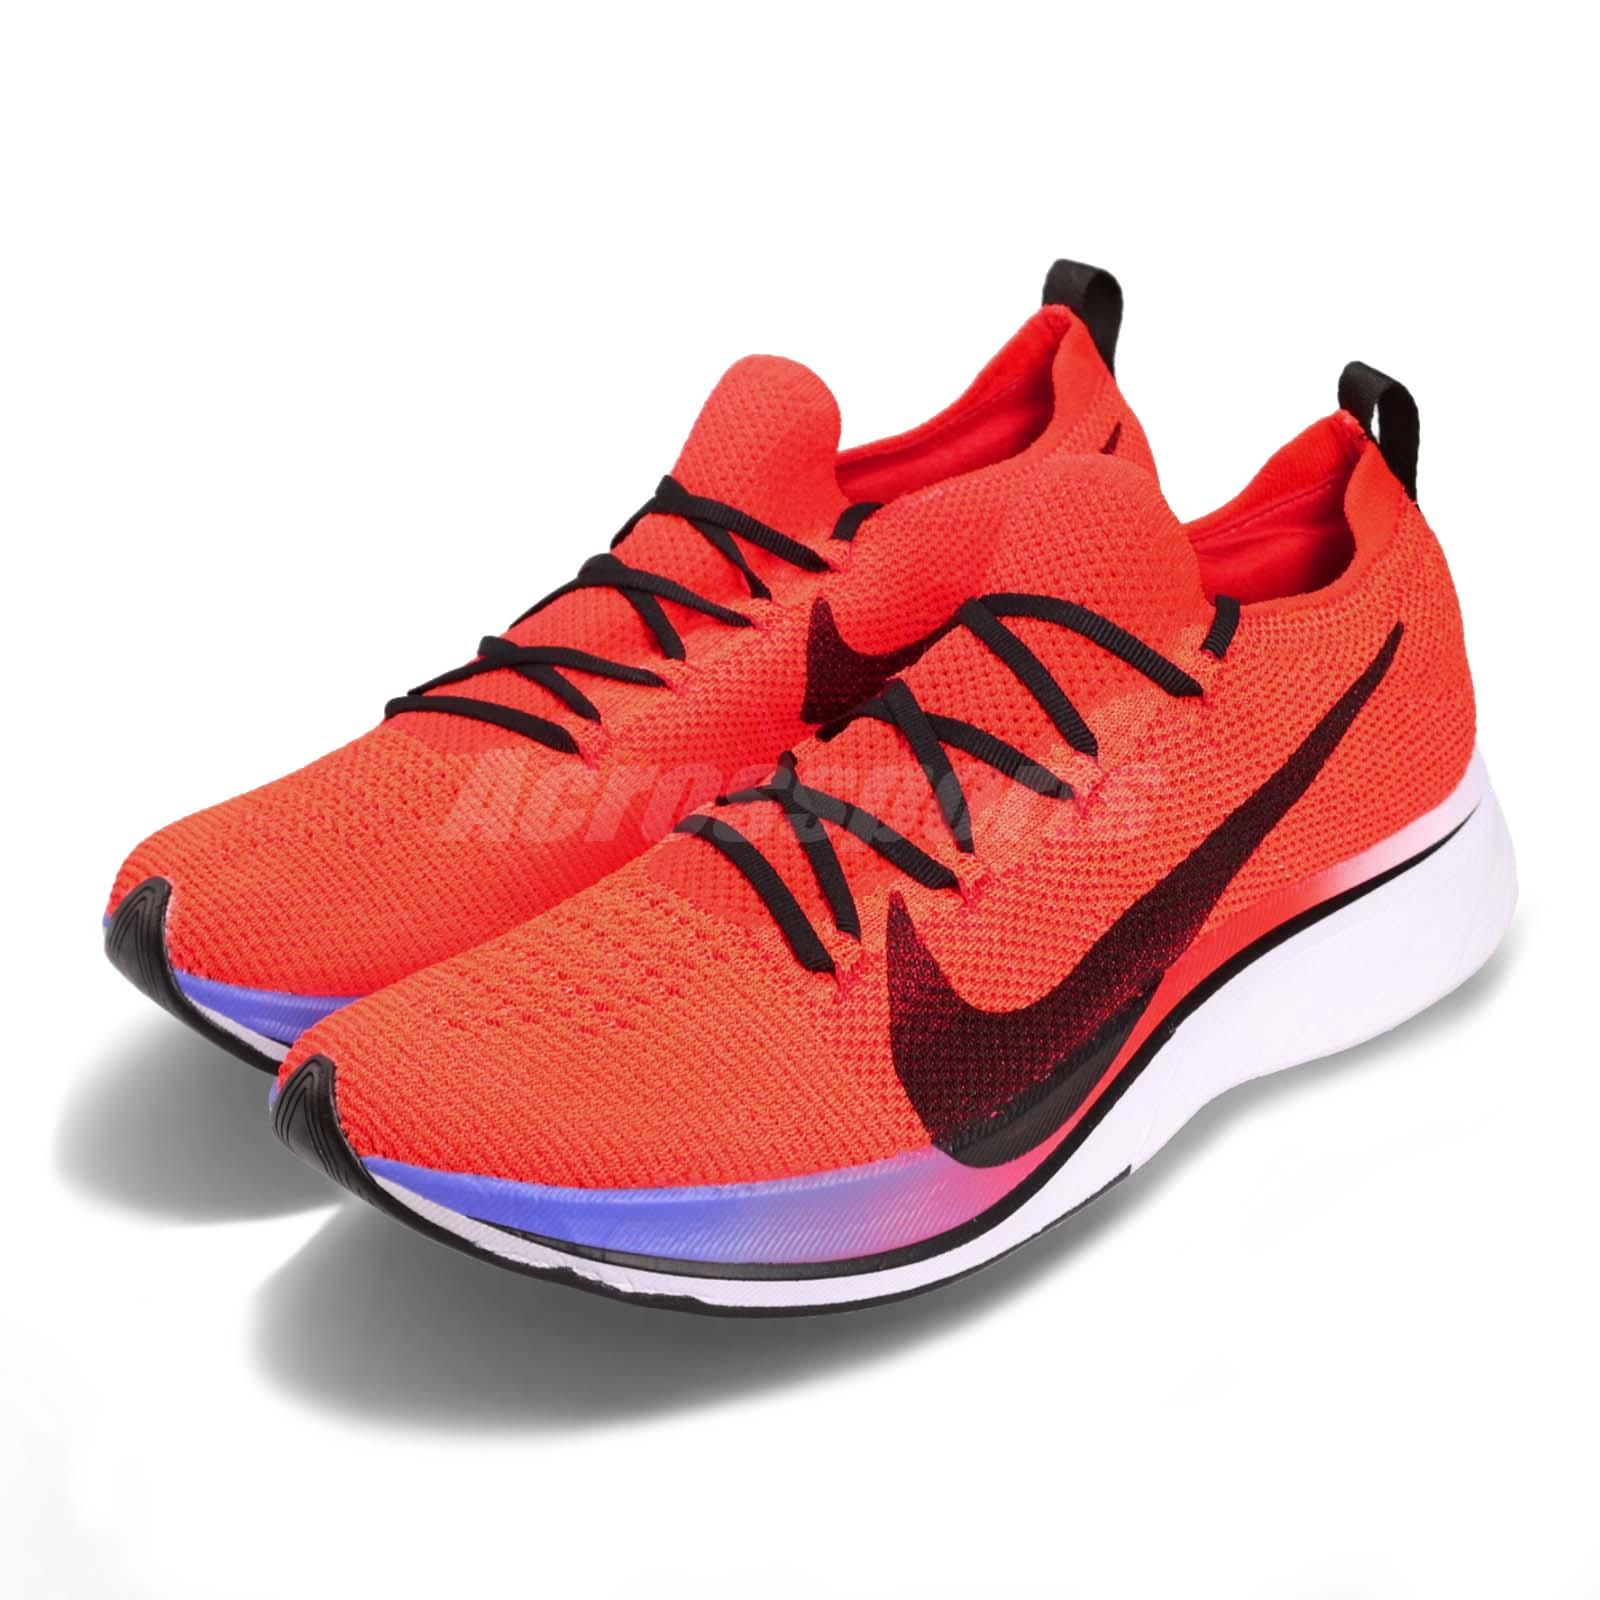 459e7bc1f8754 Details about Nike Vaporfly 4% Flyknit Bright Crimson Black Men Running  Shoes AJ3857-601